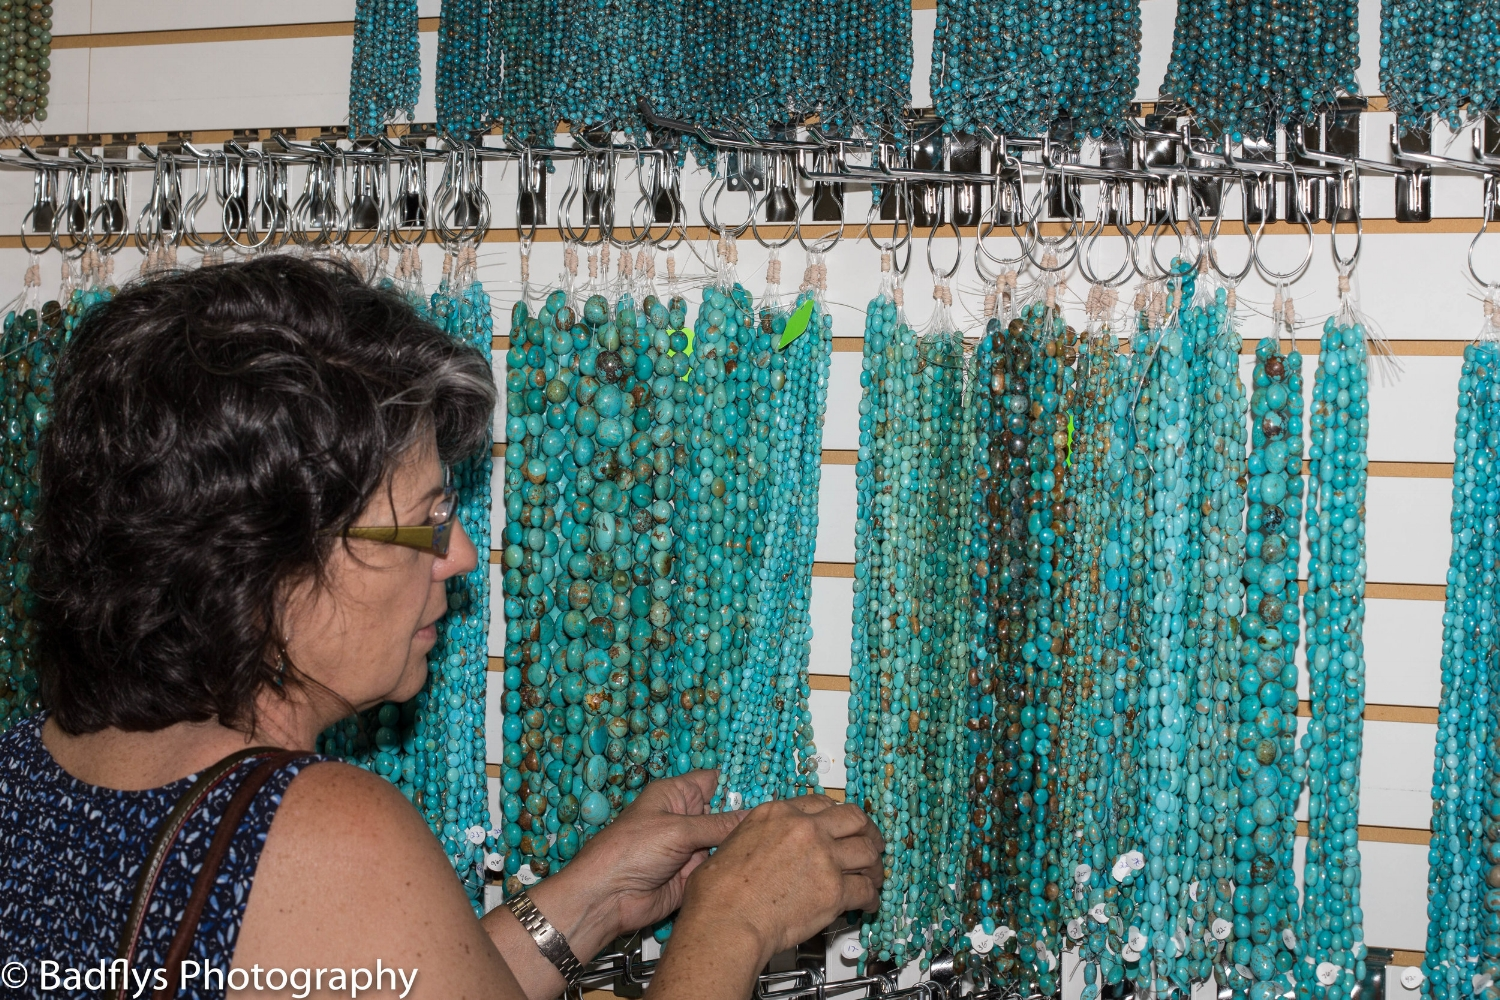 Picking through the turquoise beads to find the right ones